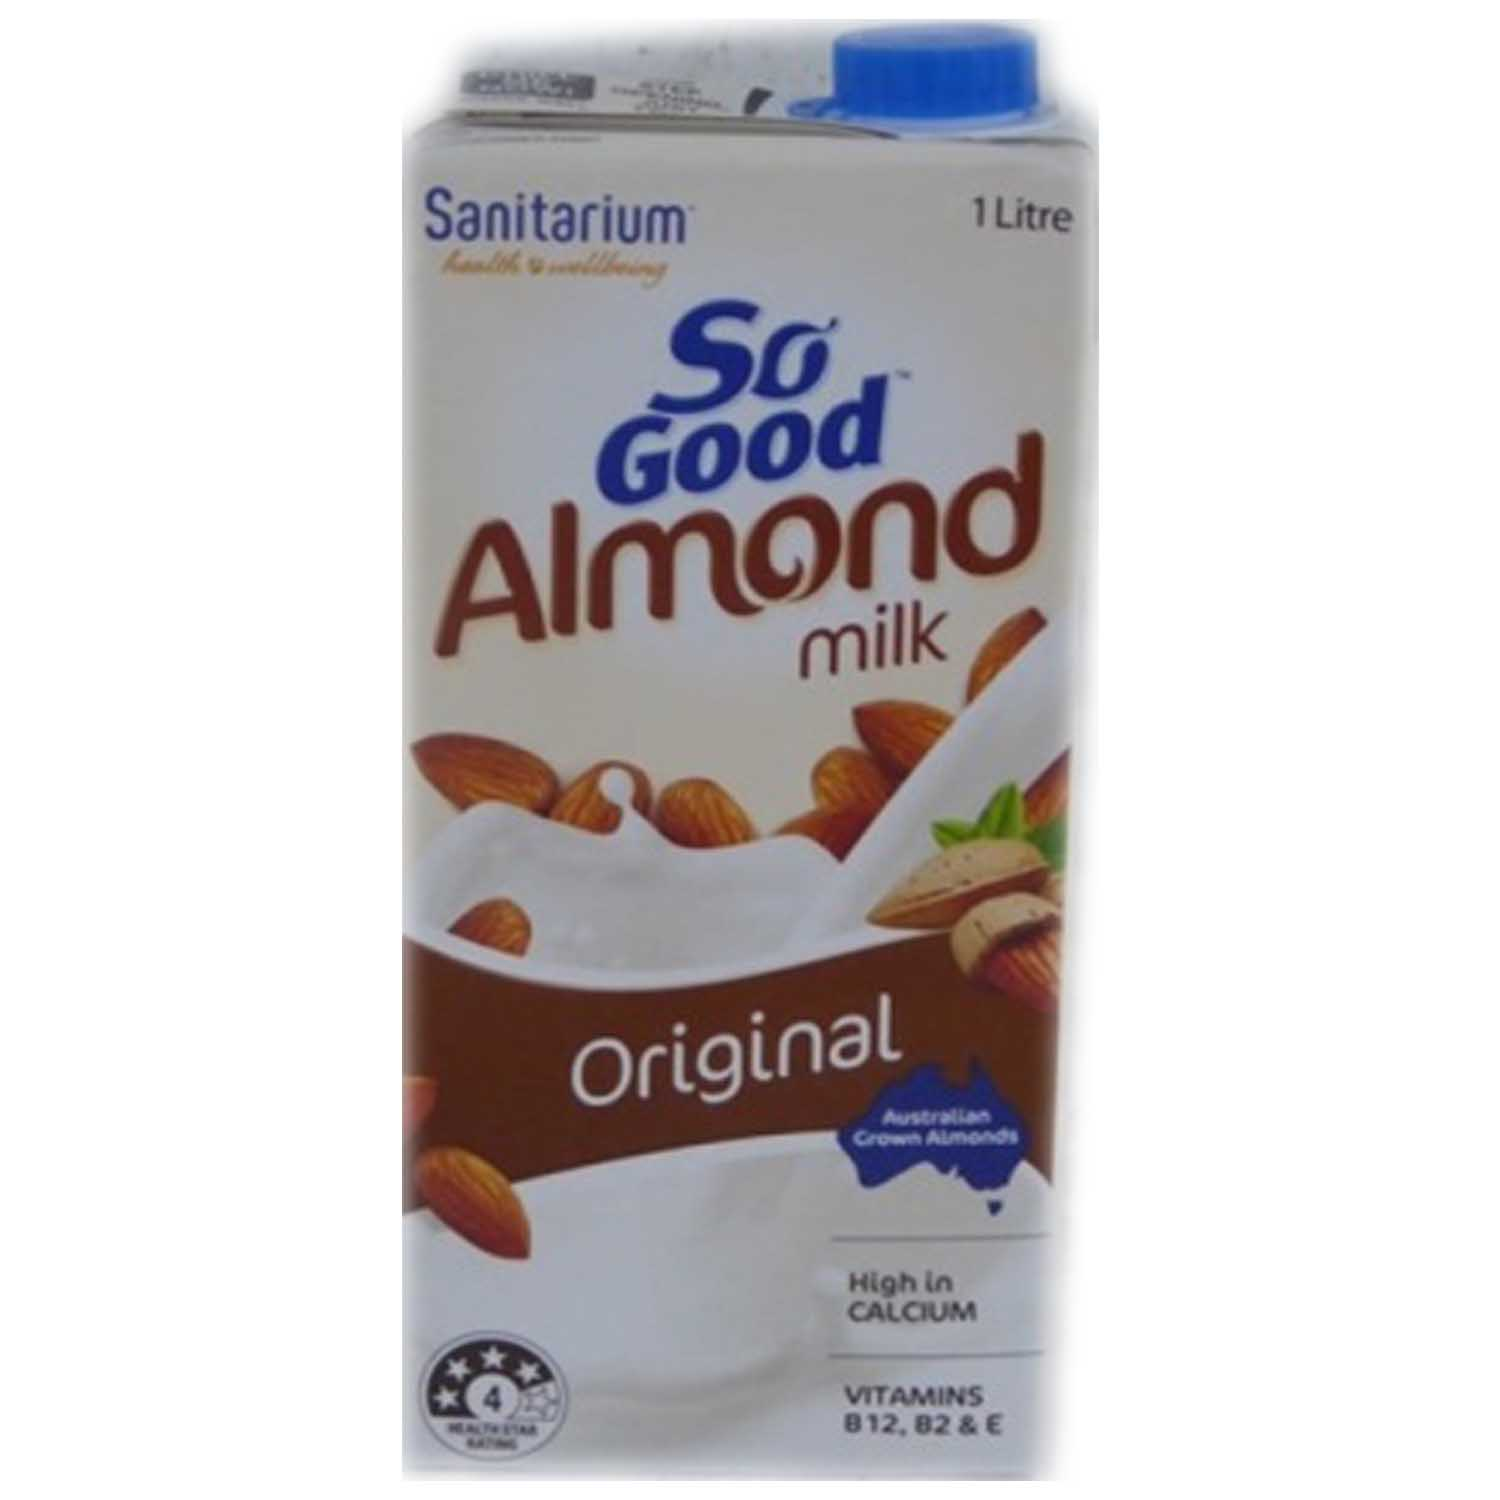 So Good Almond Milk 1ltr